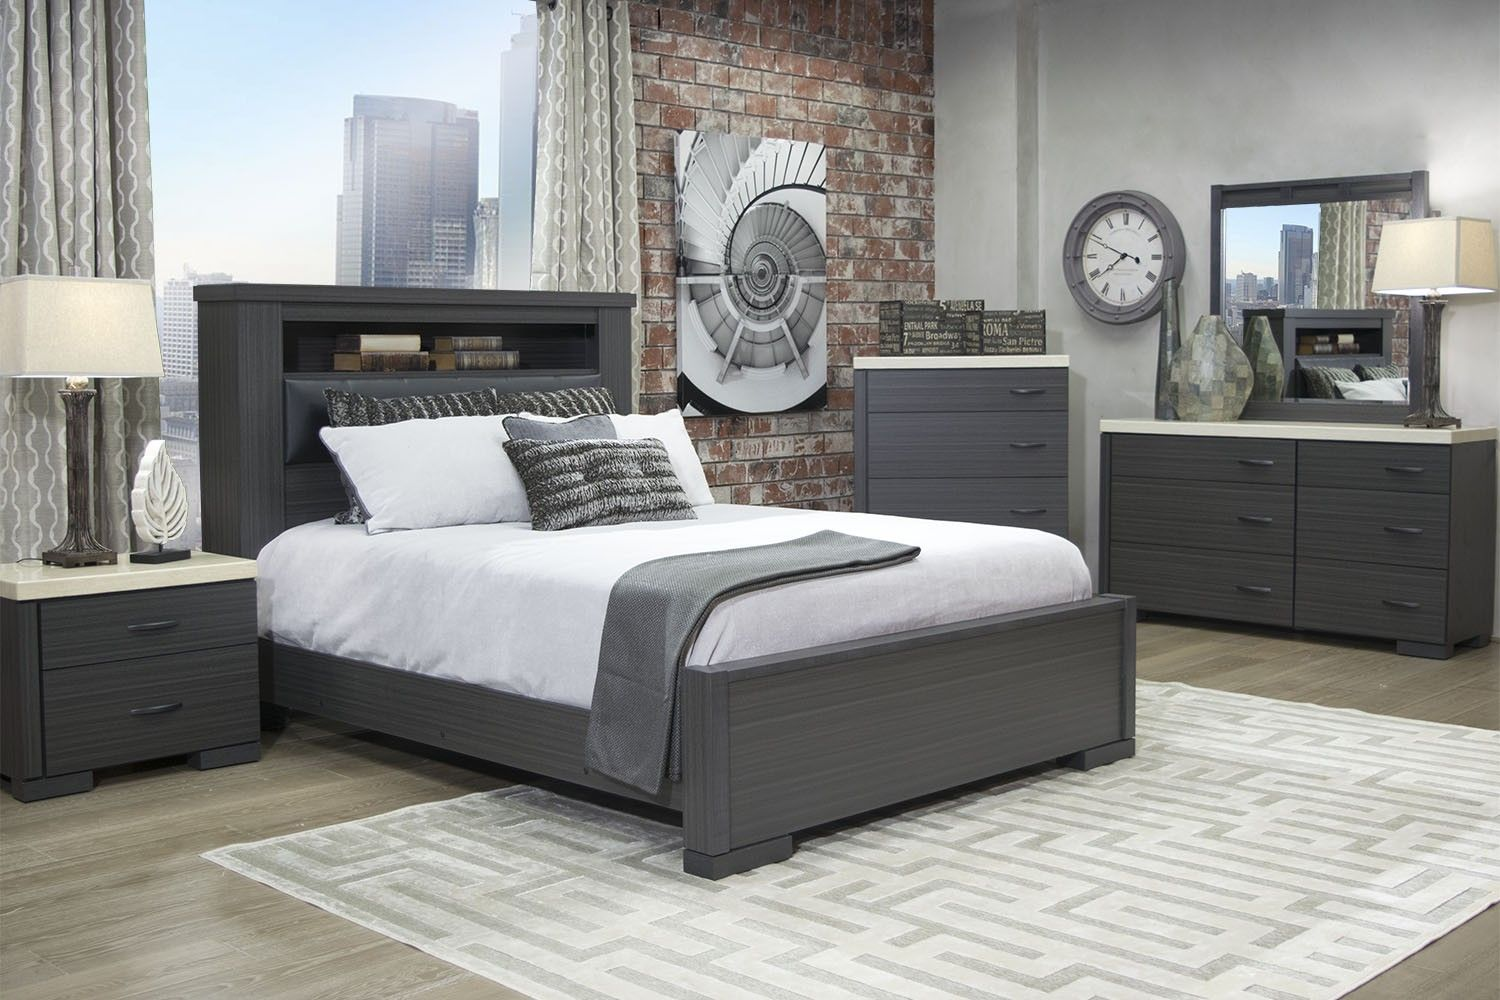 Incroyable Mor Furniture For Less The Motivo Queen Bookcase Bed